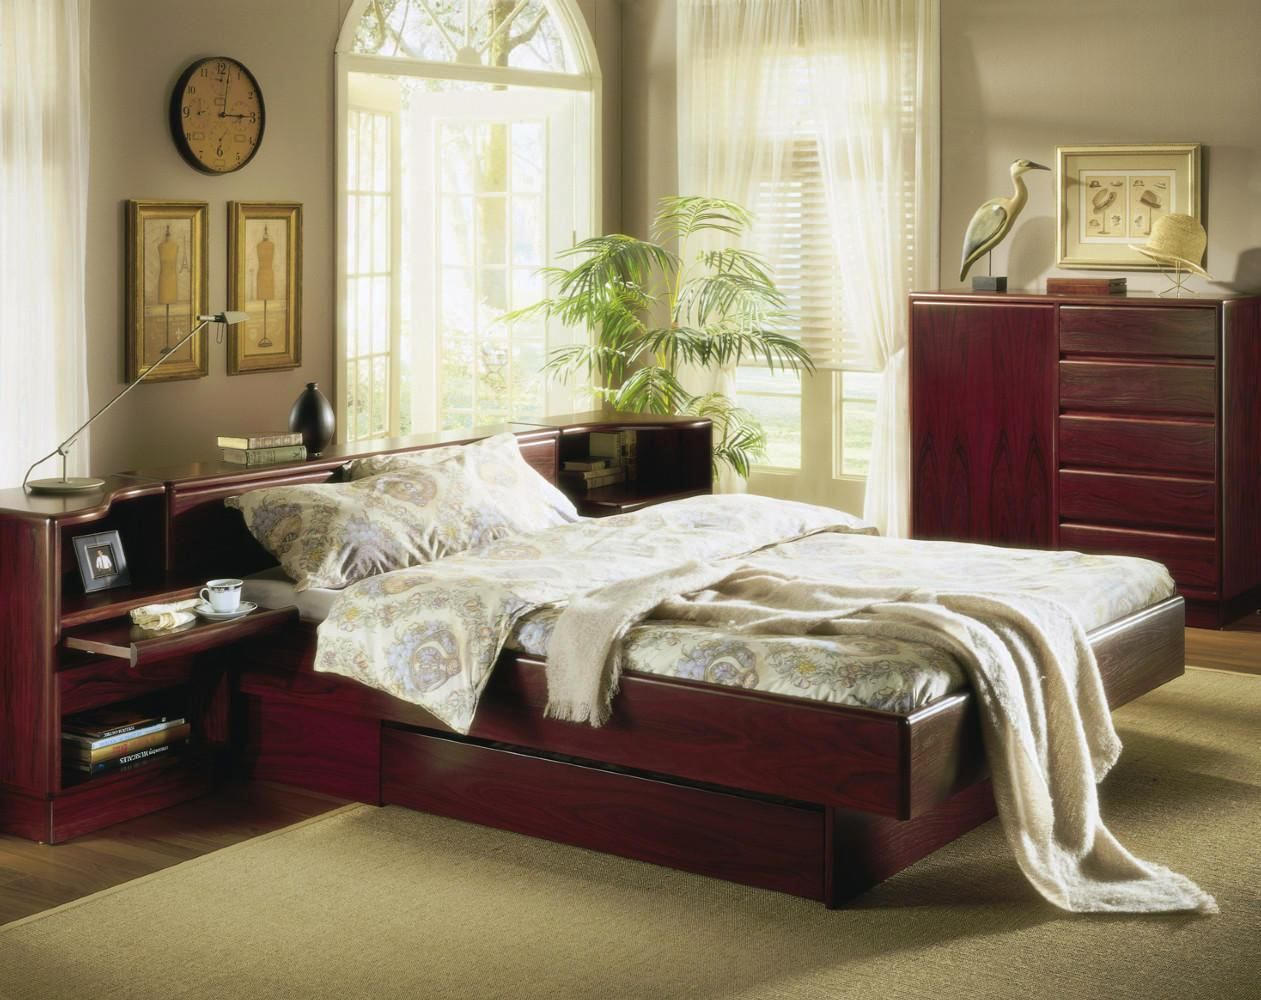 Teak Wood Bedroom Furniture Solid Teak Bed Malaysia Bed Frame Kl Wood Bedroom Wood Bedroom Furniture Oak Bed Frame